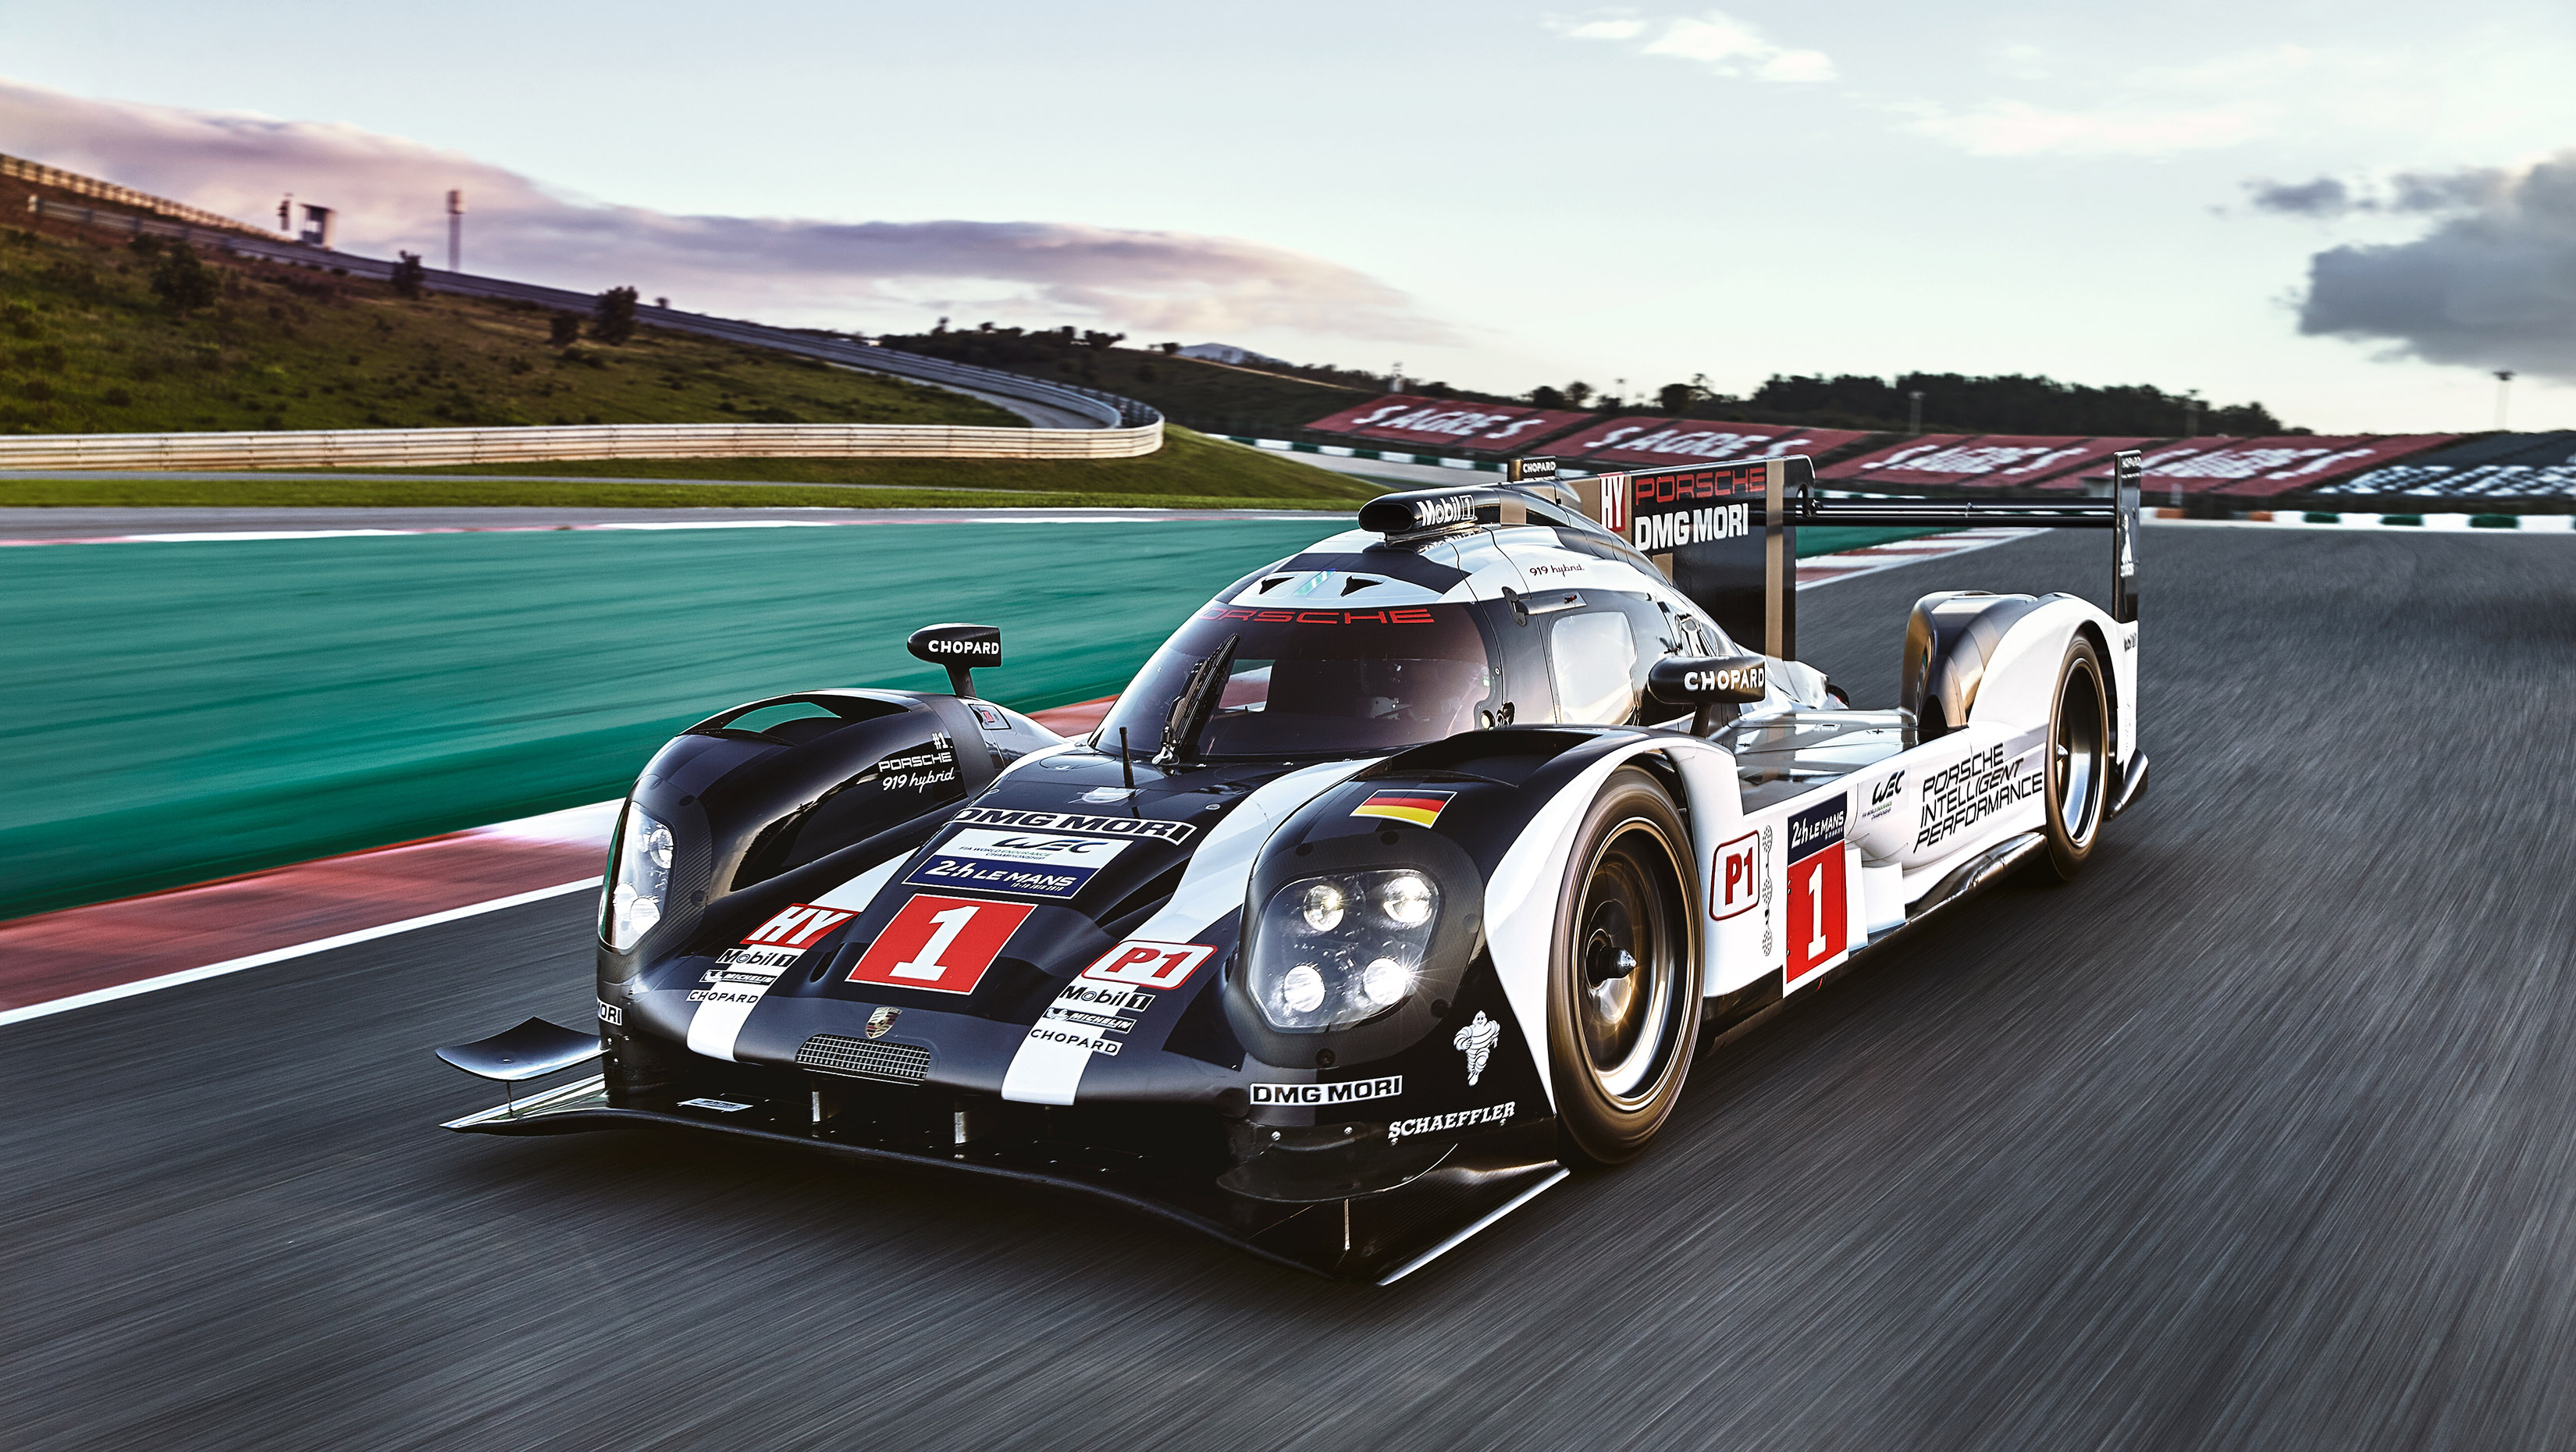 2016 Porsche 919 Hybrid LMP1 Race Car Packs 900+ Horsepower ...